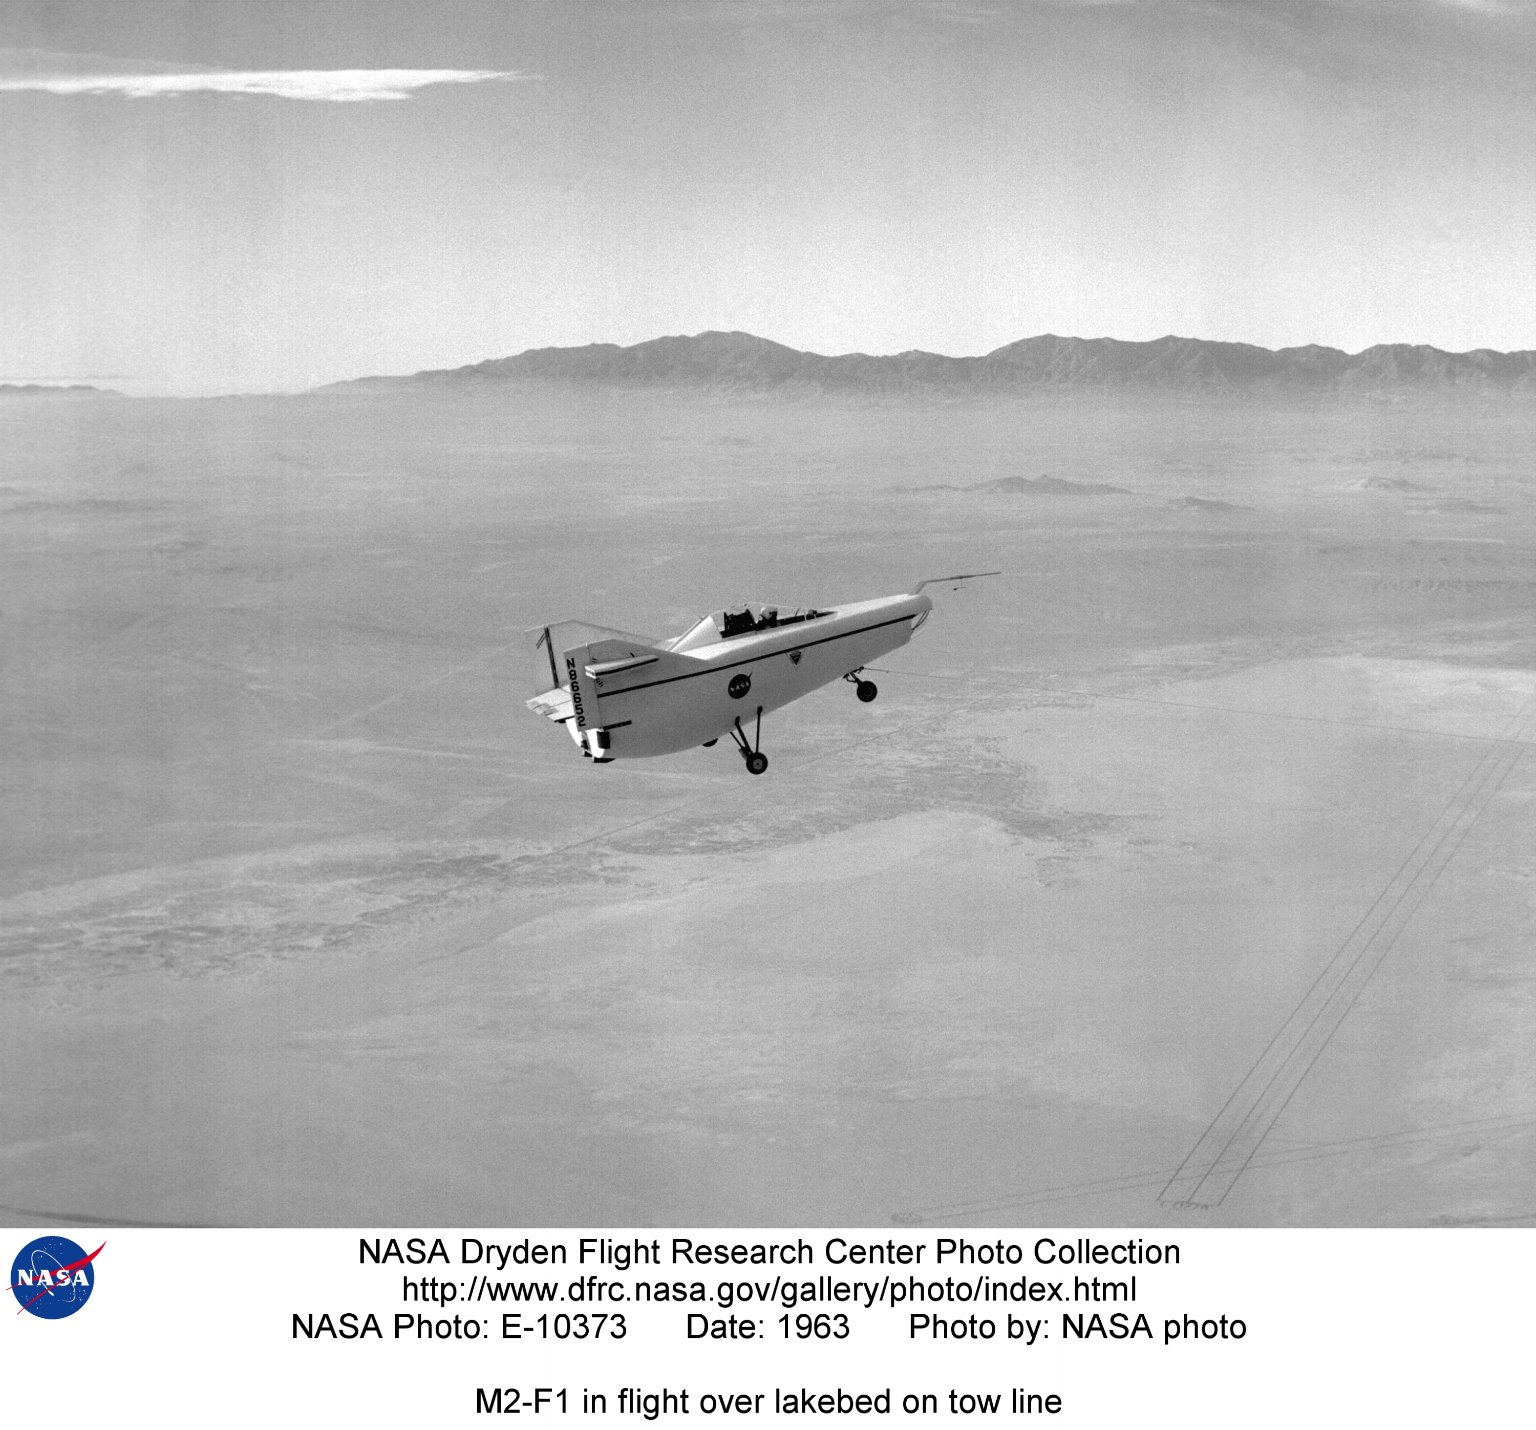 M2-F1 in flight over lakebed on tow line